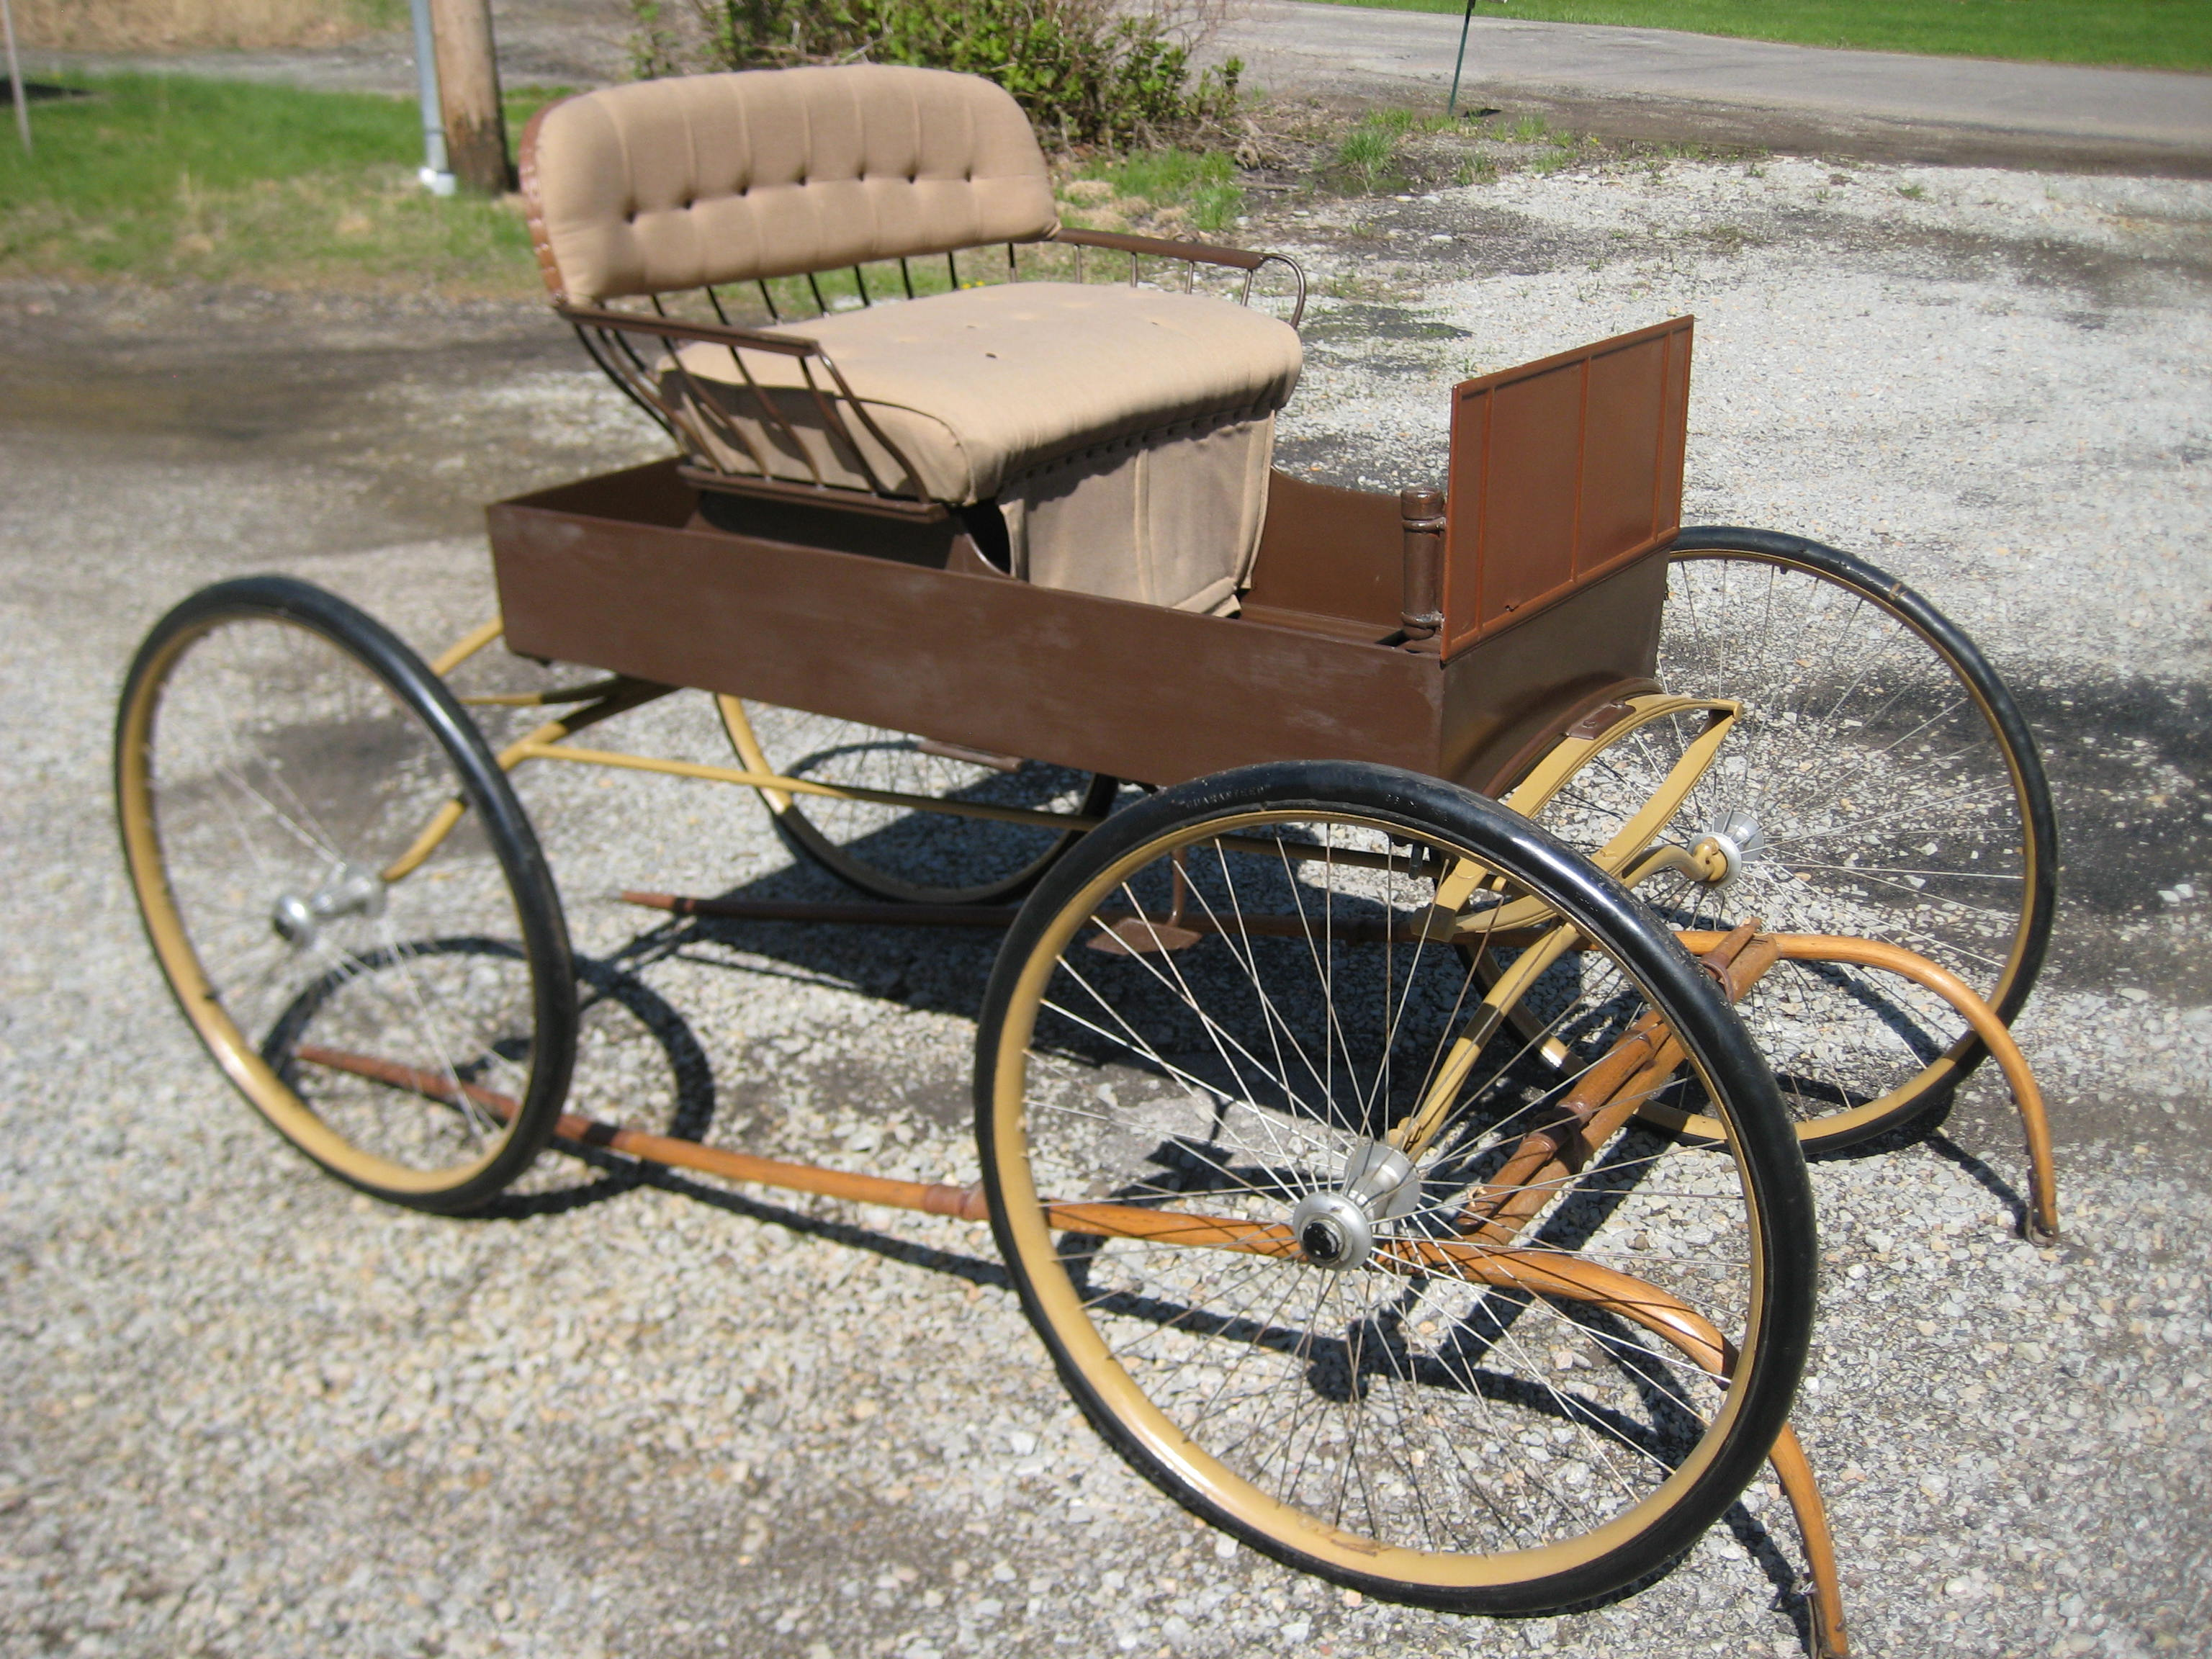 Drawn vehicle antique car CARRIAGES New Current Auctions ANTIQUES